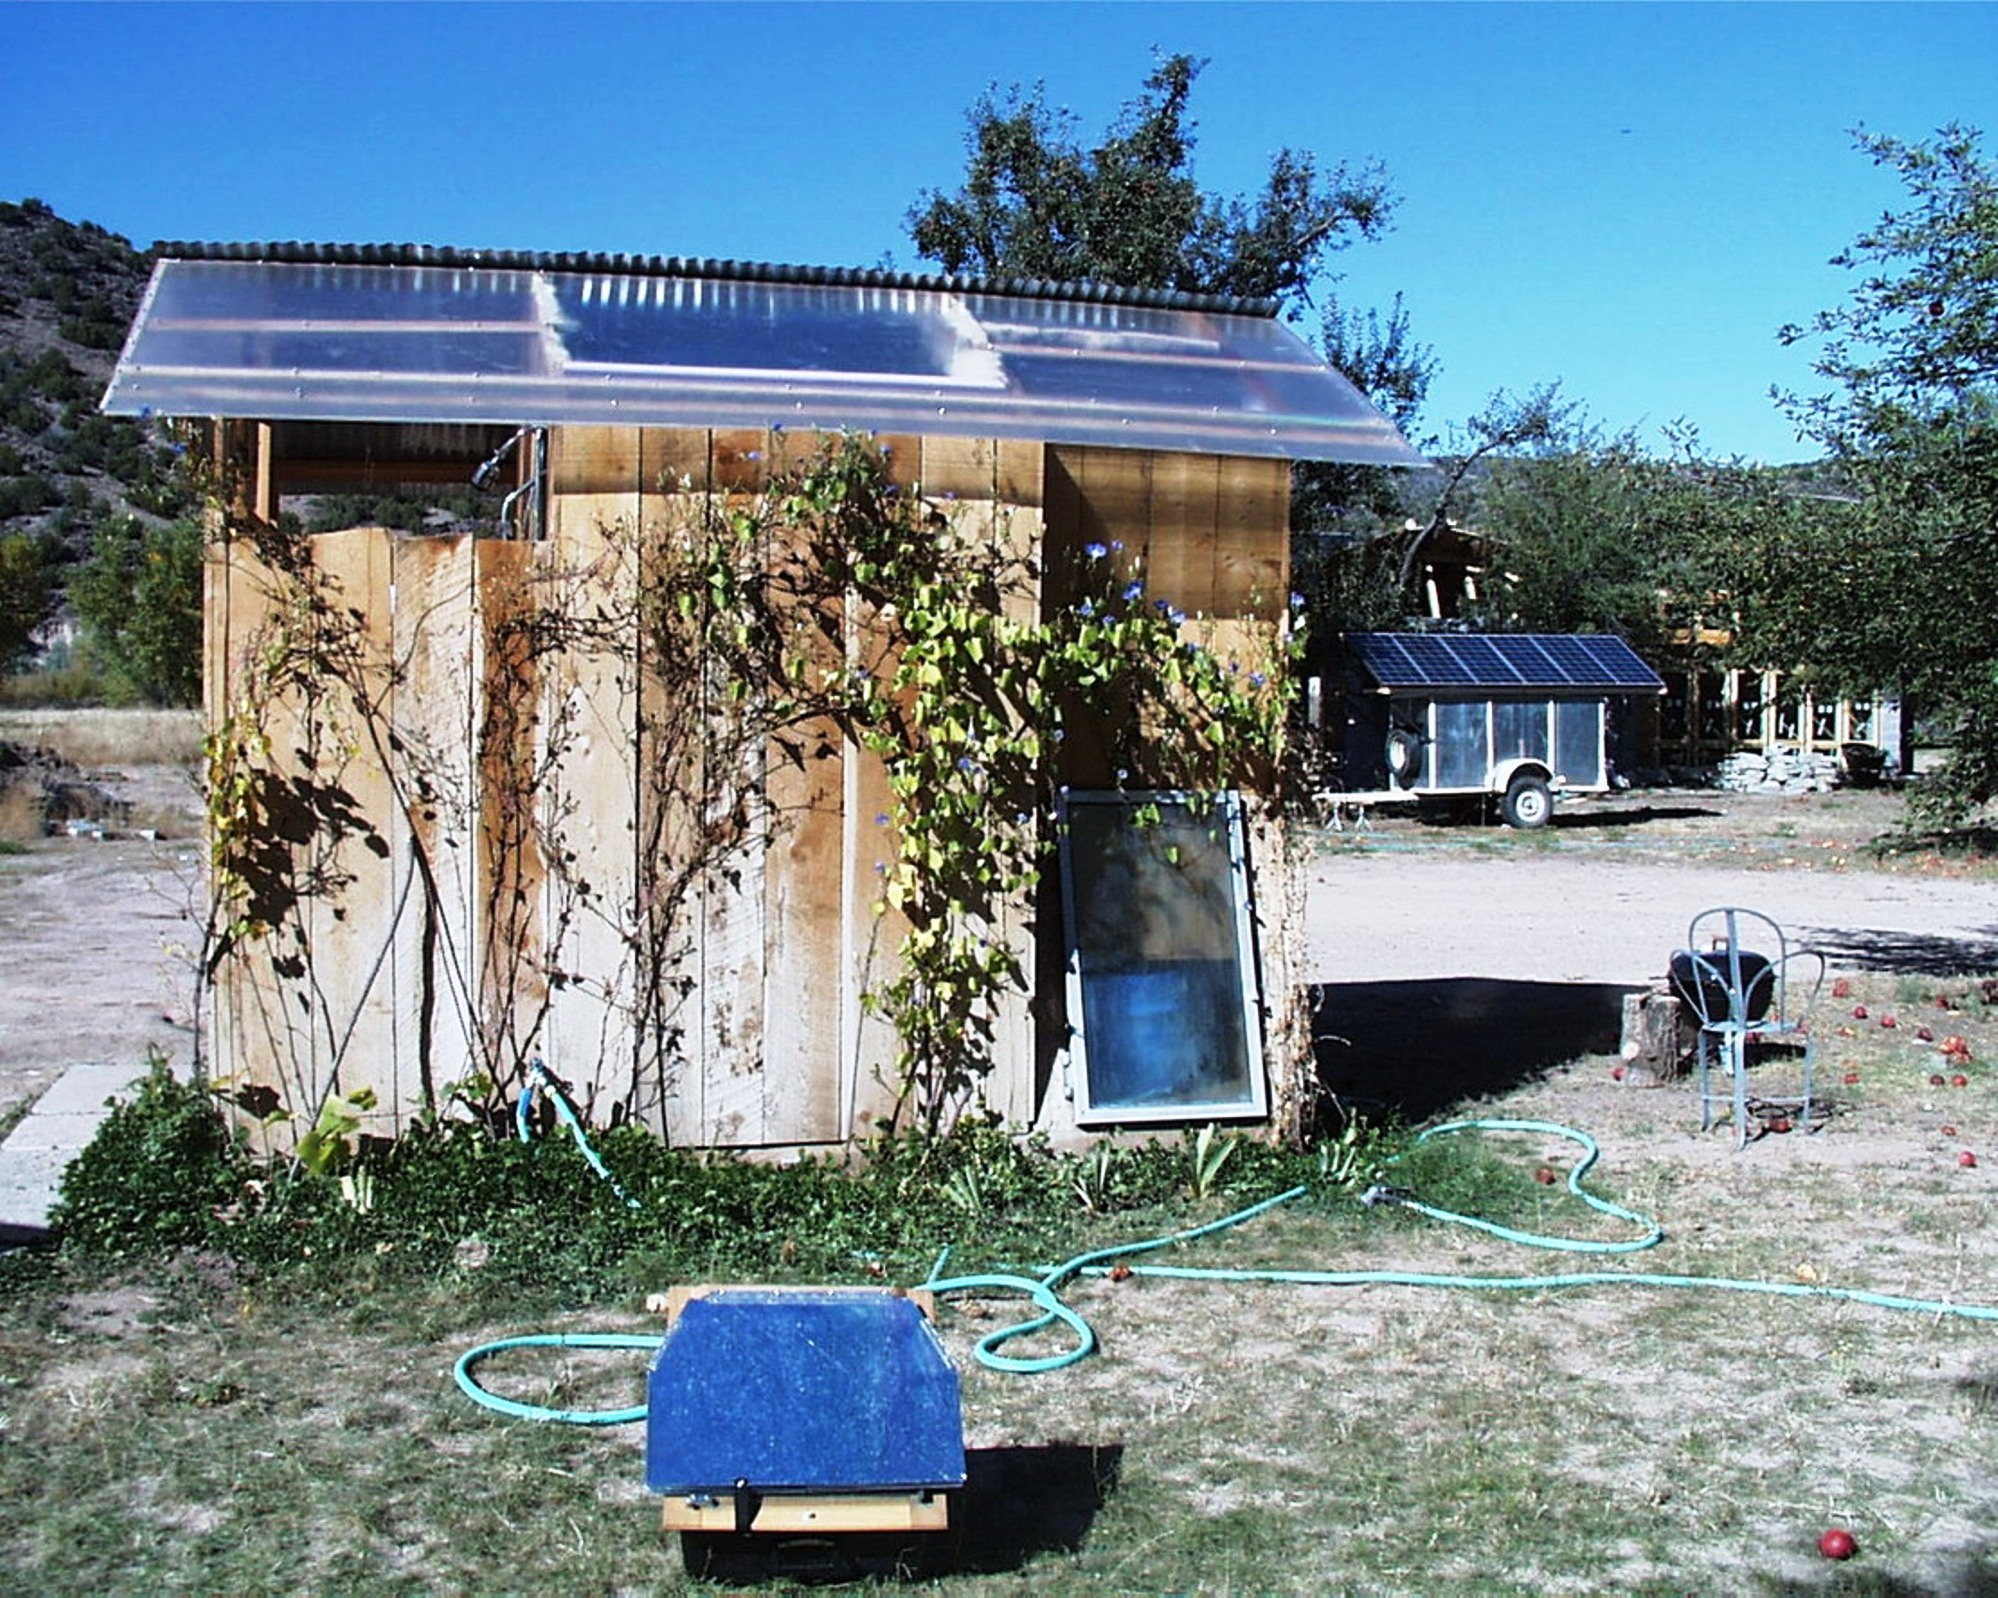 The Solar bathouse